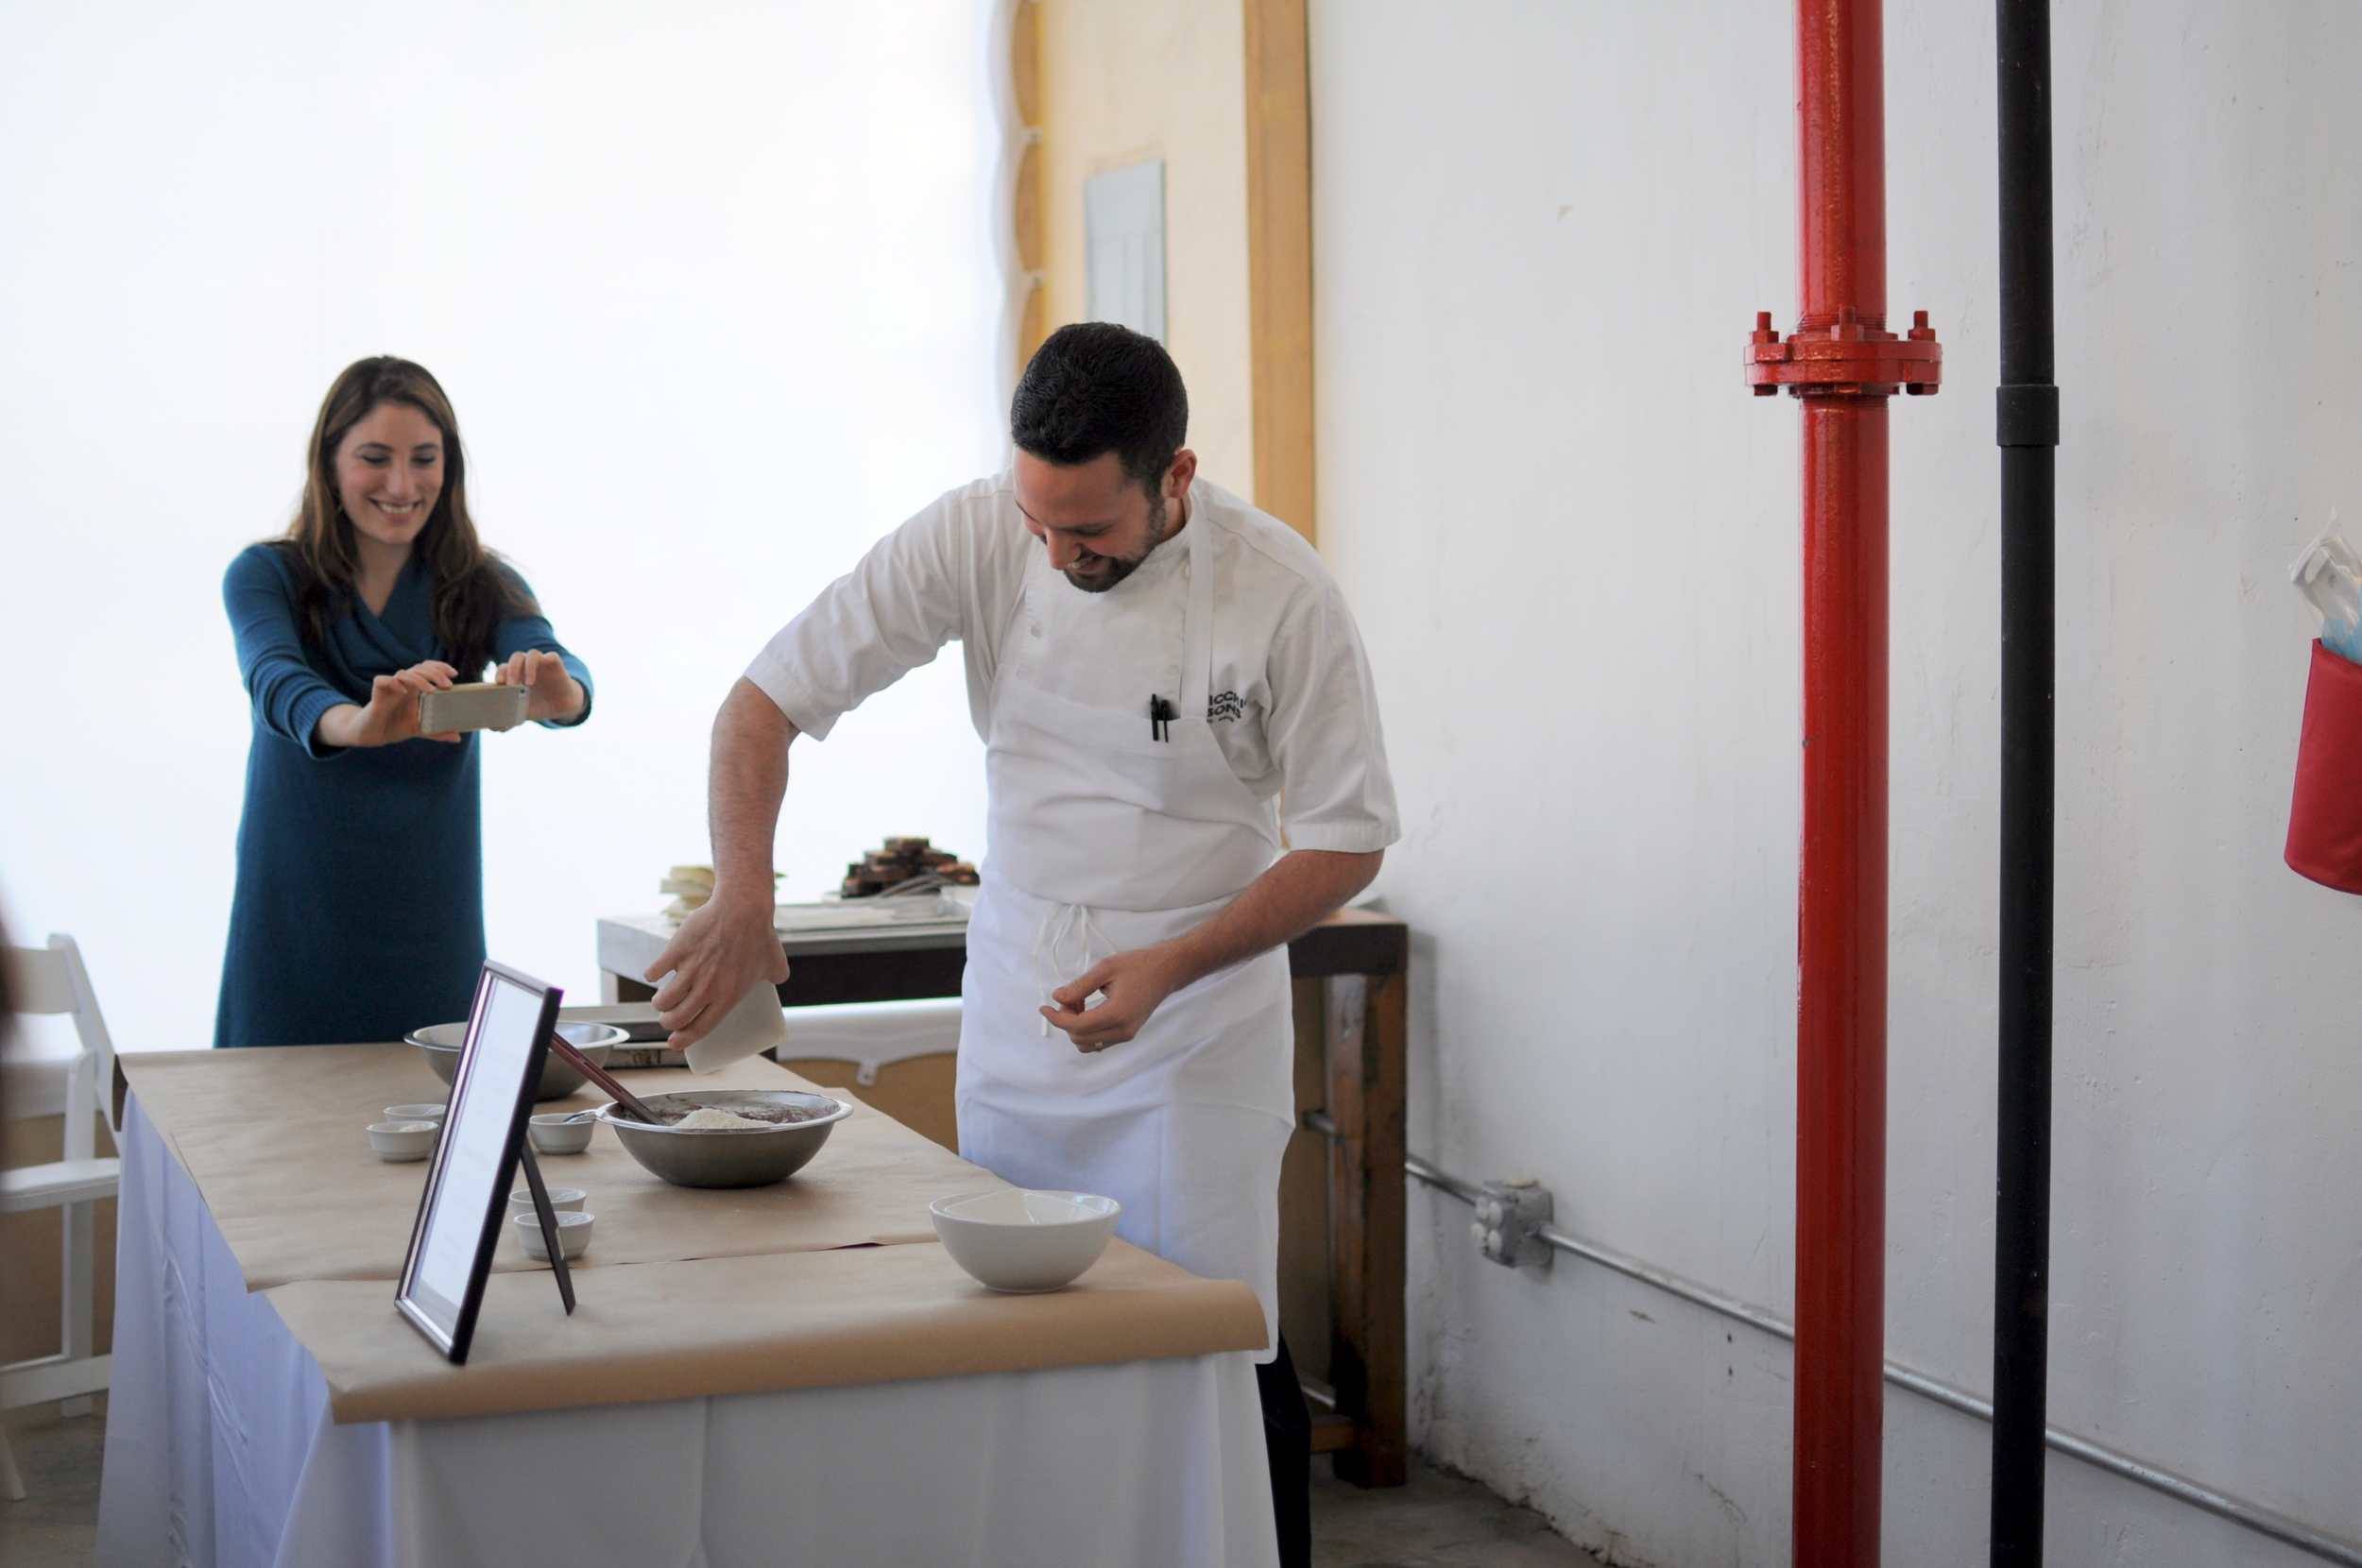 Stephen Colluci ,pastry chef extraordinaire, in action